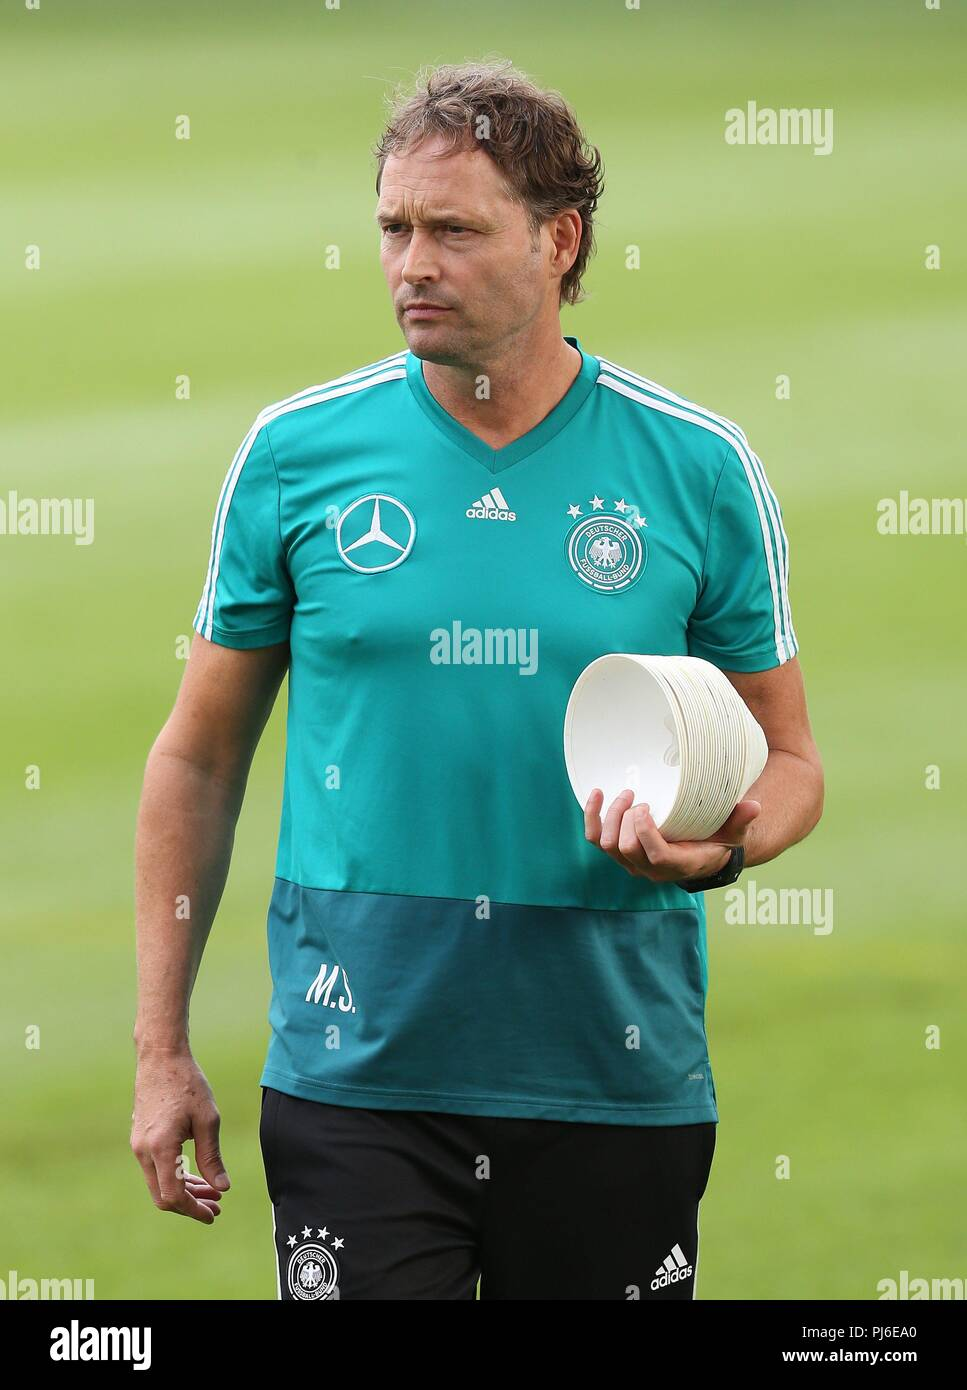 firo: 04.09.2018, Fuvuball, football, national team, training, Marcus Sorg, DFB, half figure, Germany | usage worldwide - Stock Image